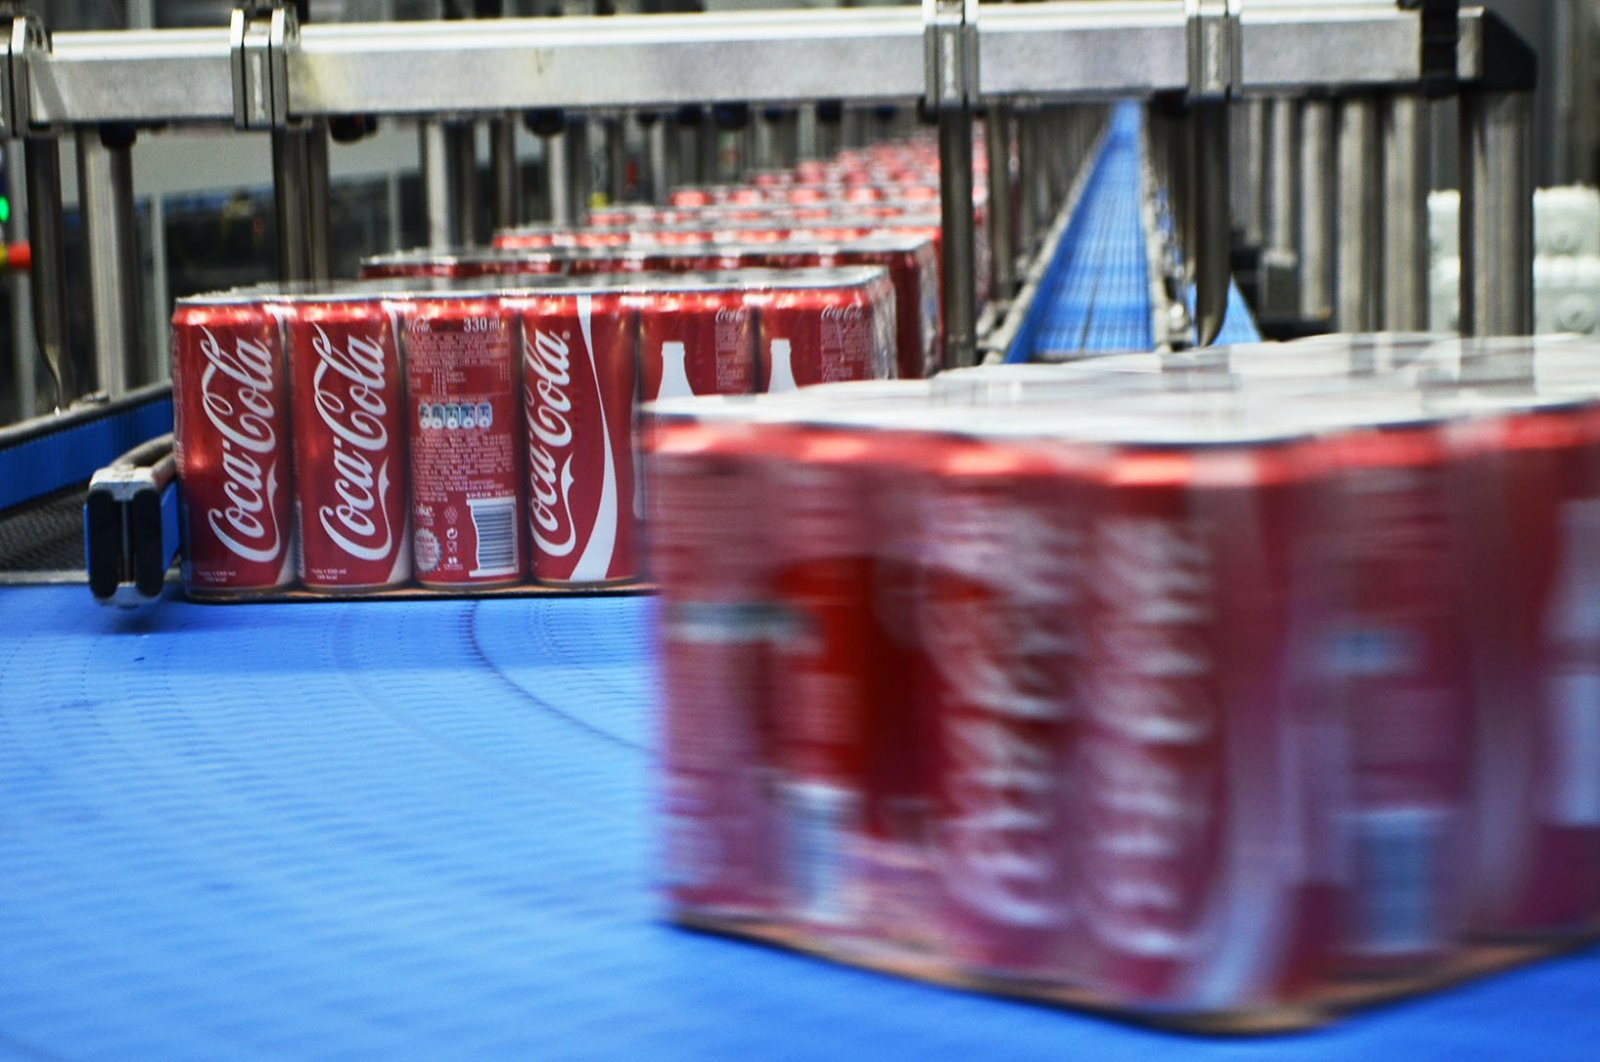 Coca Cola Içecek's factory in western Turkey's Isparta, Sunday, March 29, 2017.